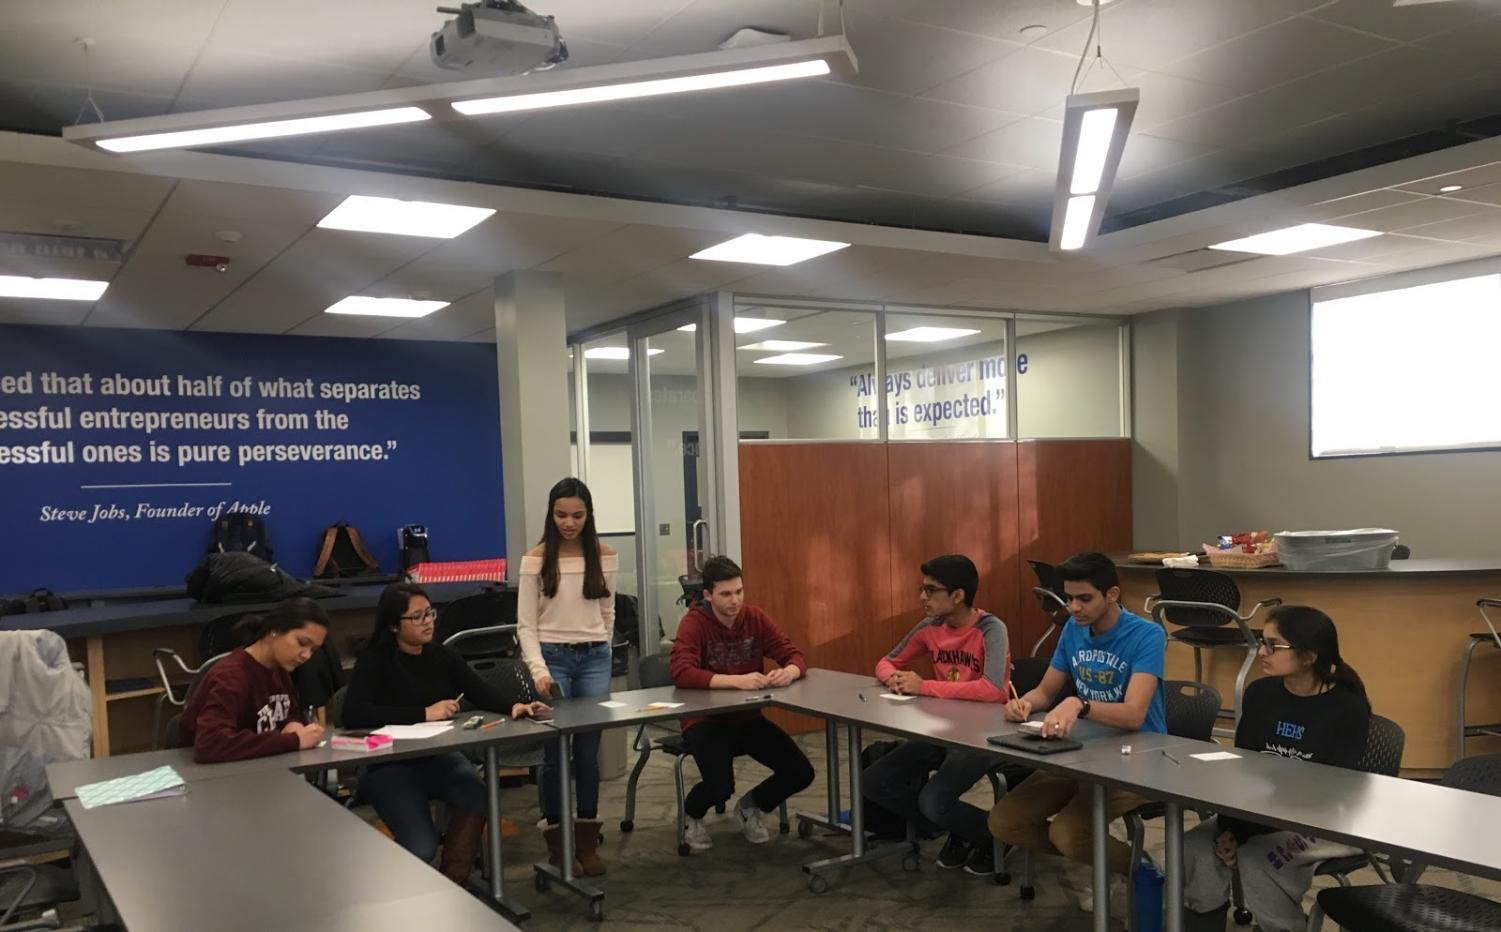 BPA team members prepare for the event Parliamentary Procedures Team. (from left to right: Emily Hunt, Meghna Dasgupta, Manushi Shah, Matthew Heroldt, Mihir Patel, Rushil Patel, and Hinal Patel)